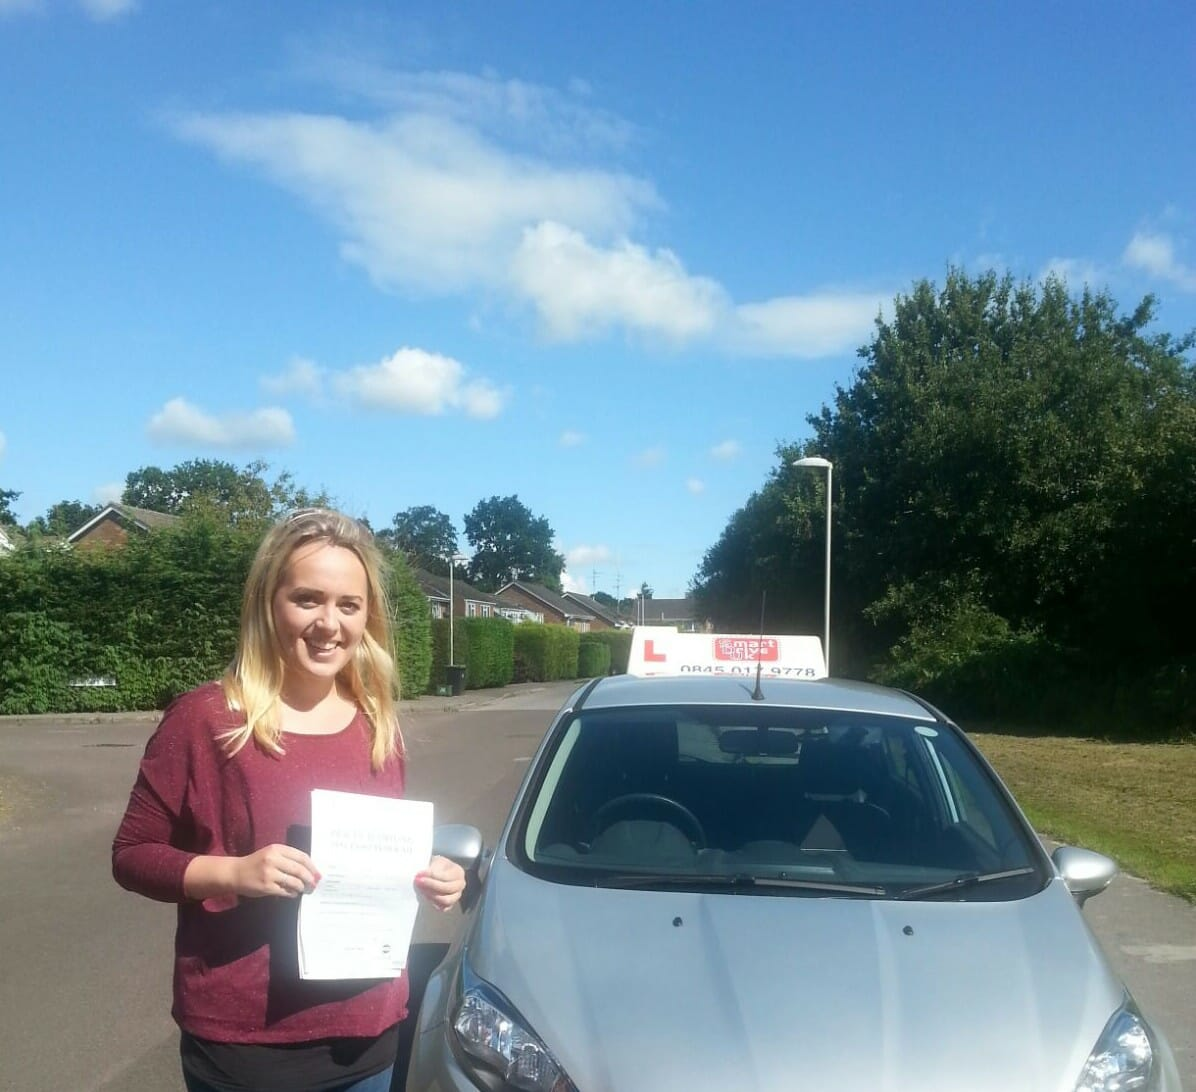 Congratulations to Anna from Bournemouth